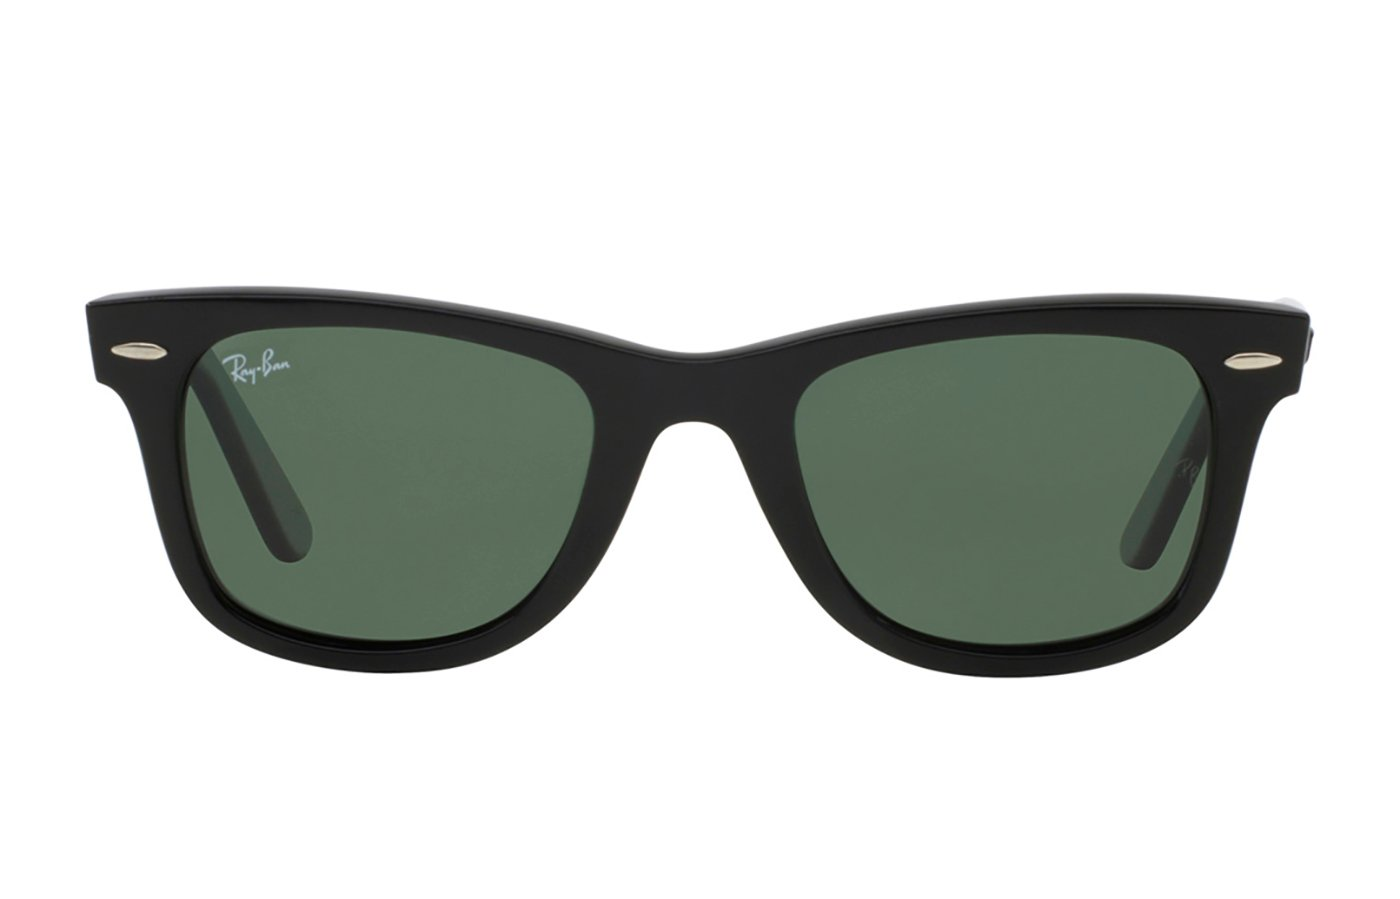 RAY-BAN WAYFARER 0RB2140 50 901 BLACK